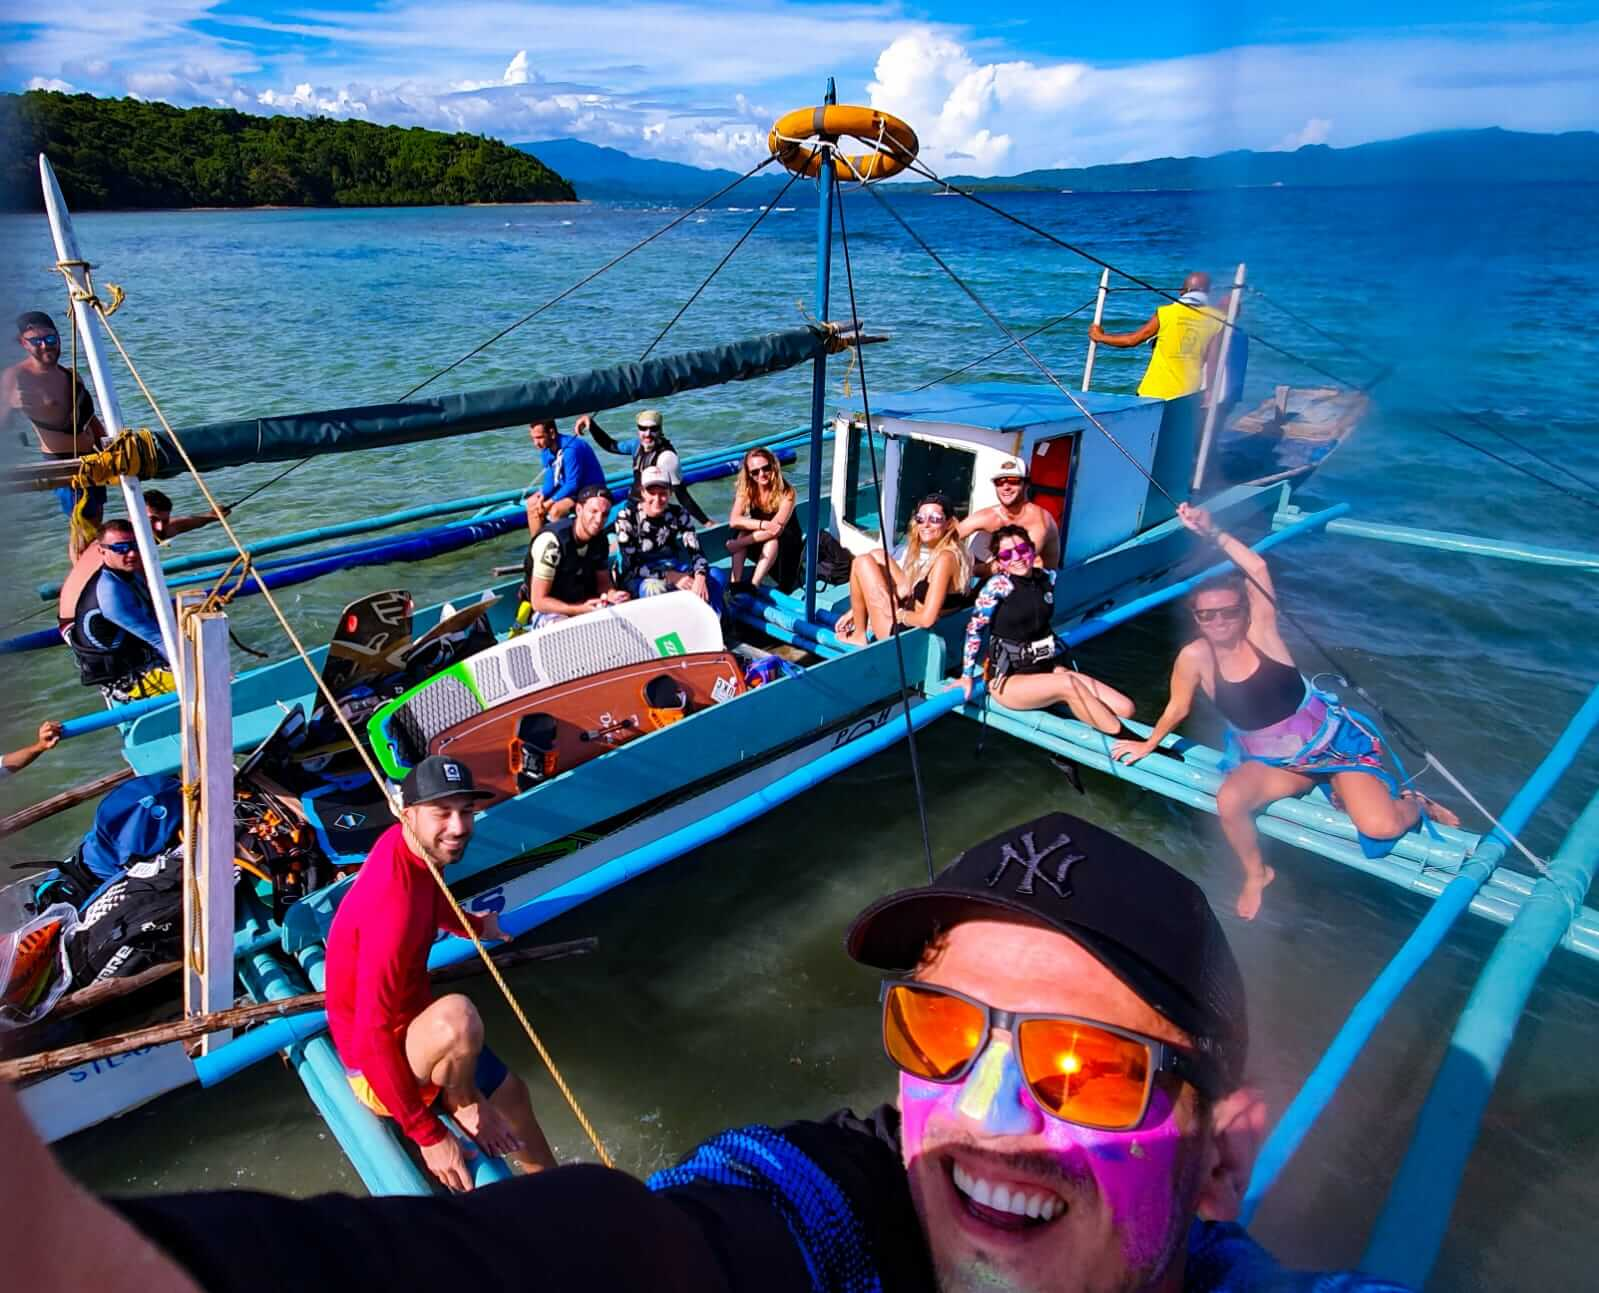 People on a boat in Mindoro Island